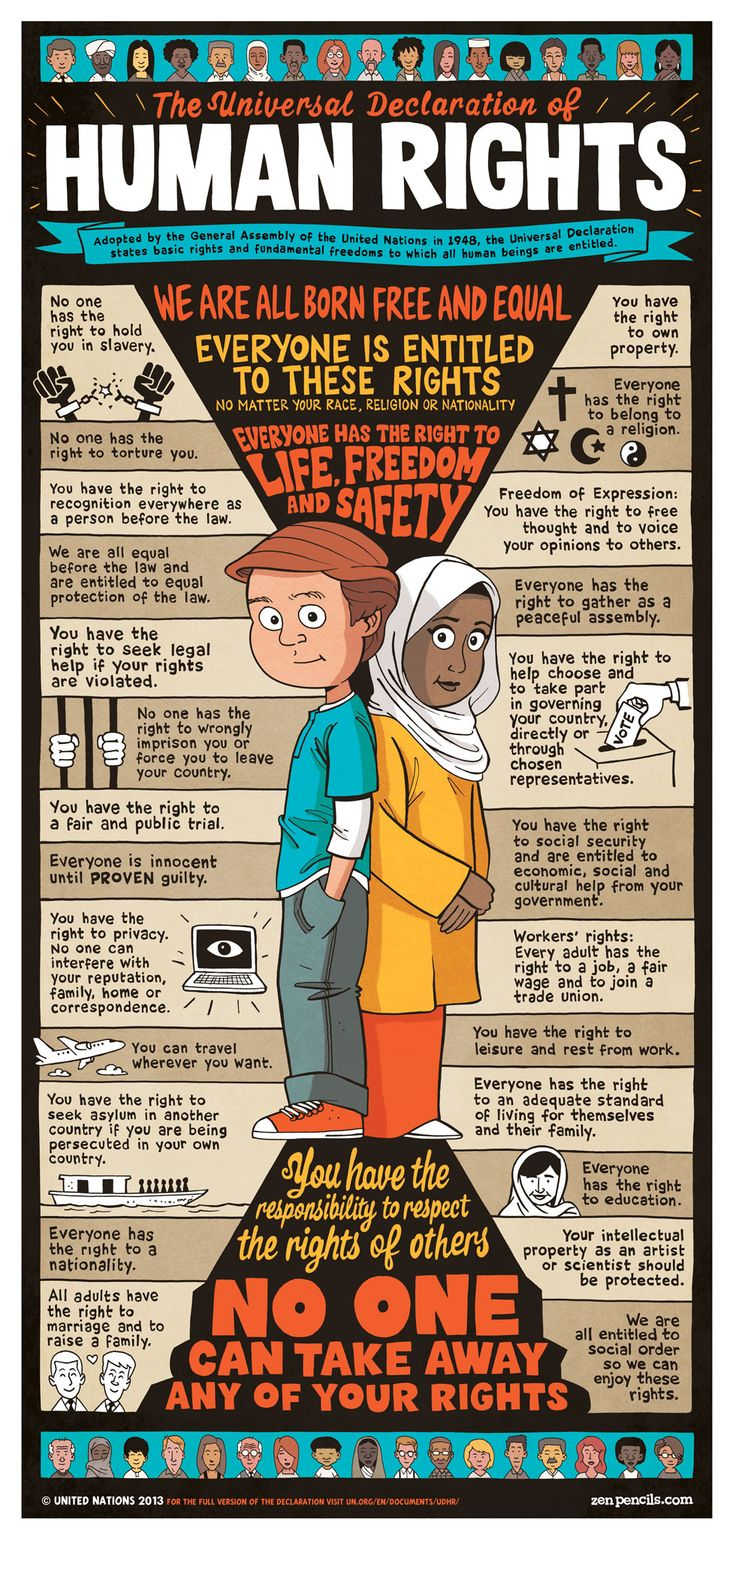 Human Rights Infographic